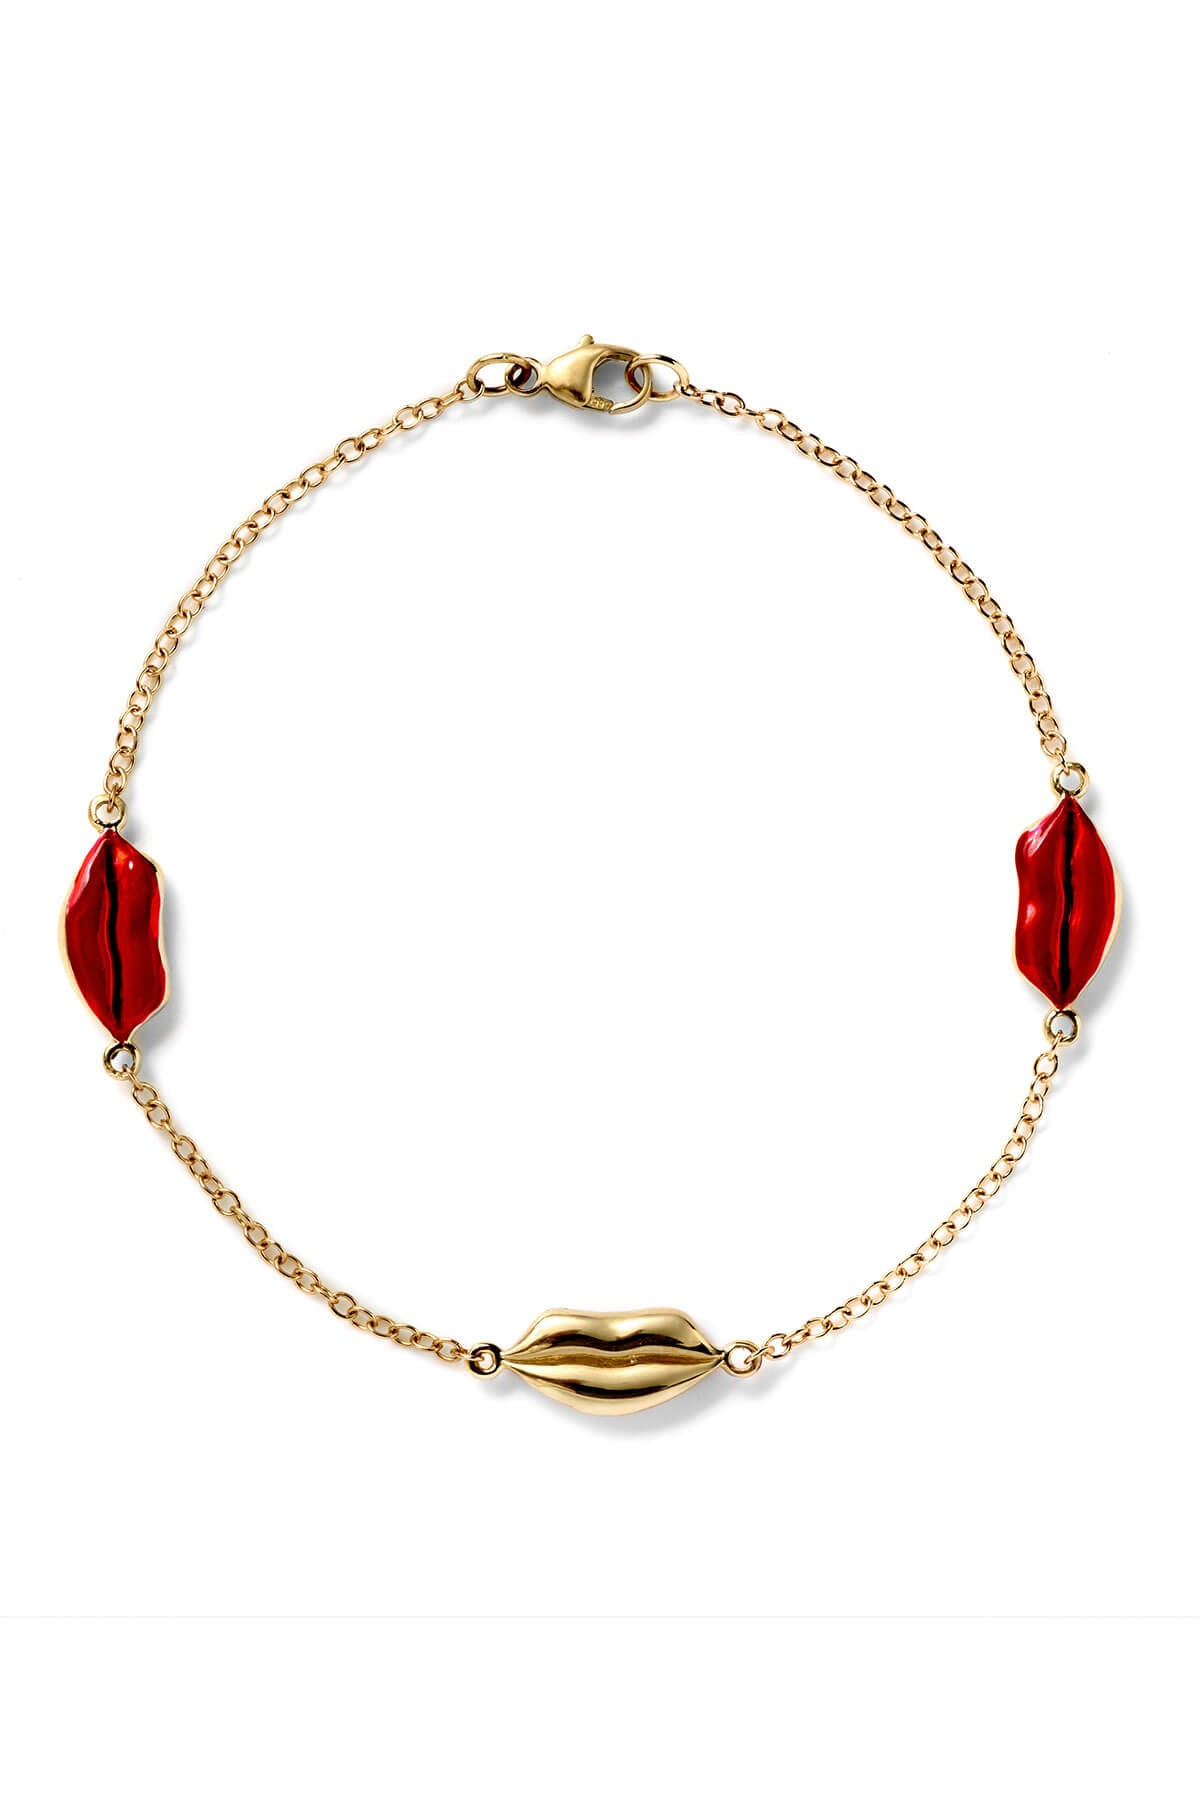 Kiss By The Yard Bracelet - In Stock